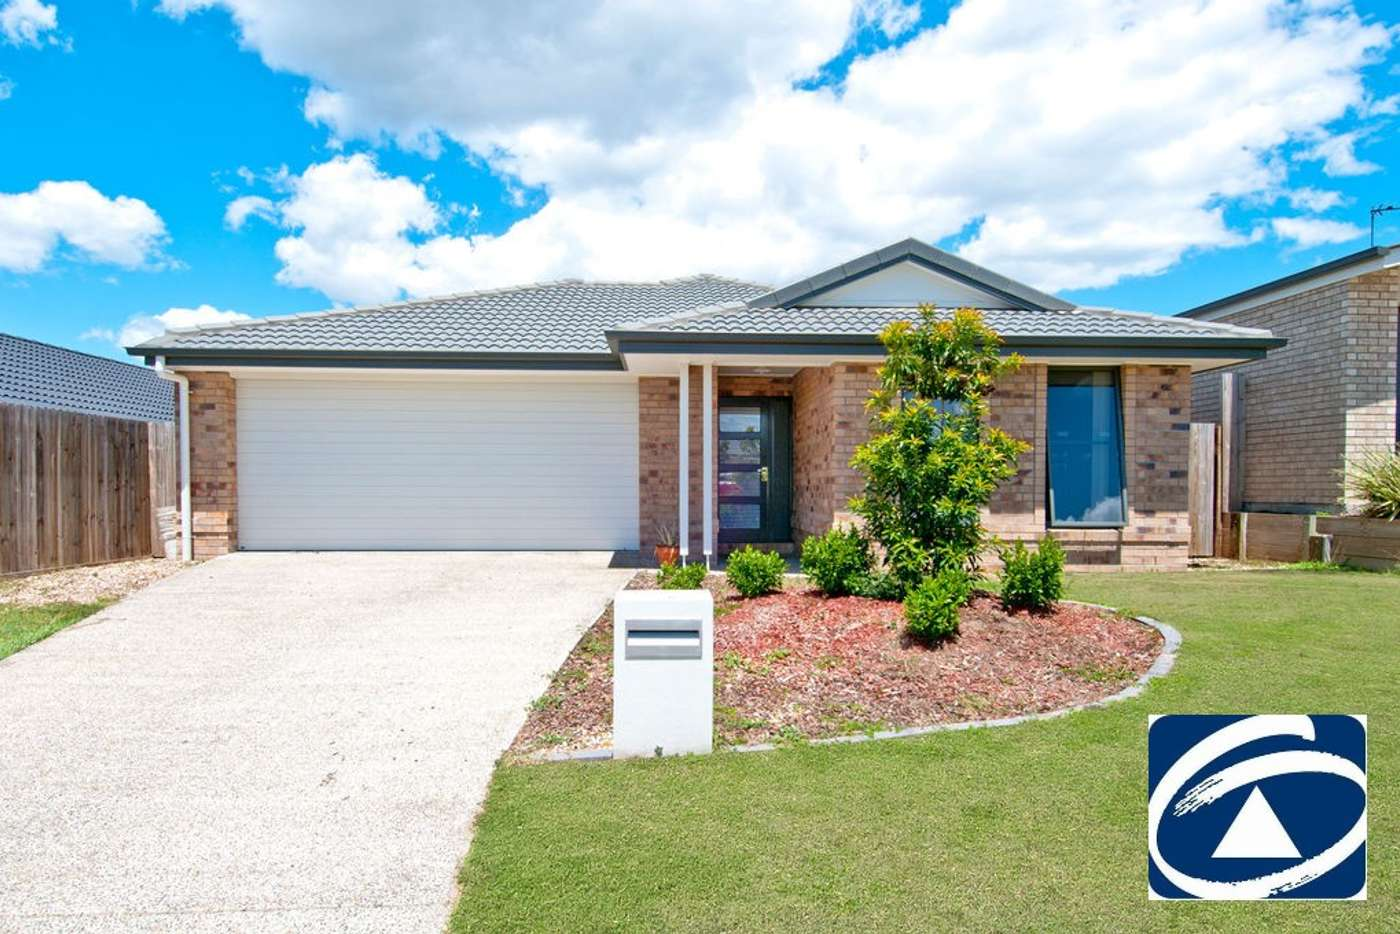 Main view of Homely house listing, 6 Orb Street, Yarrabilba QLD 4207